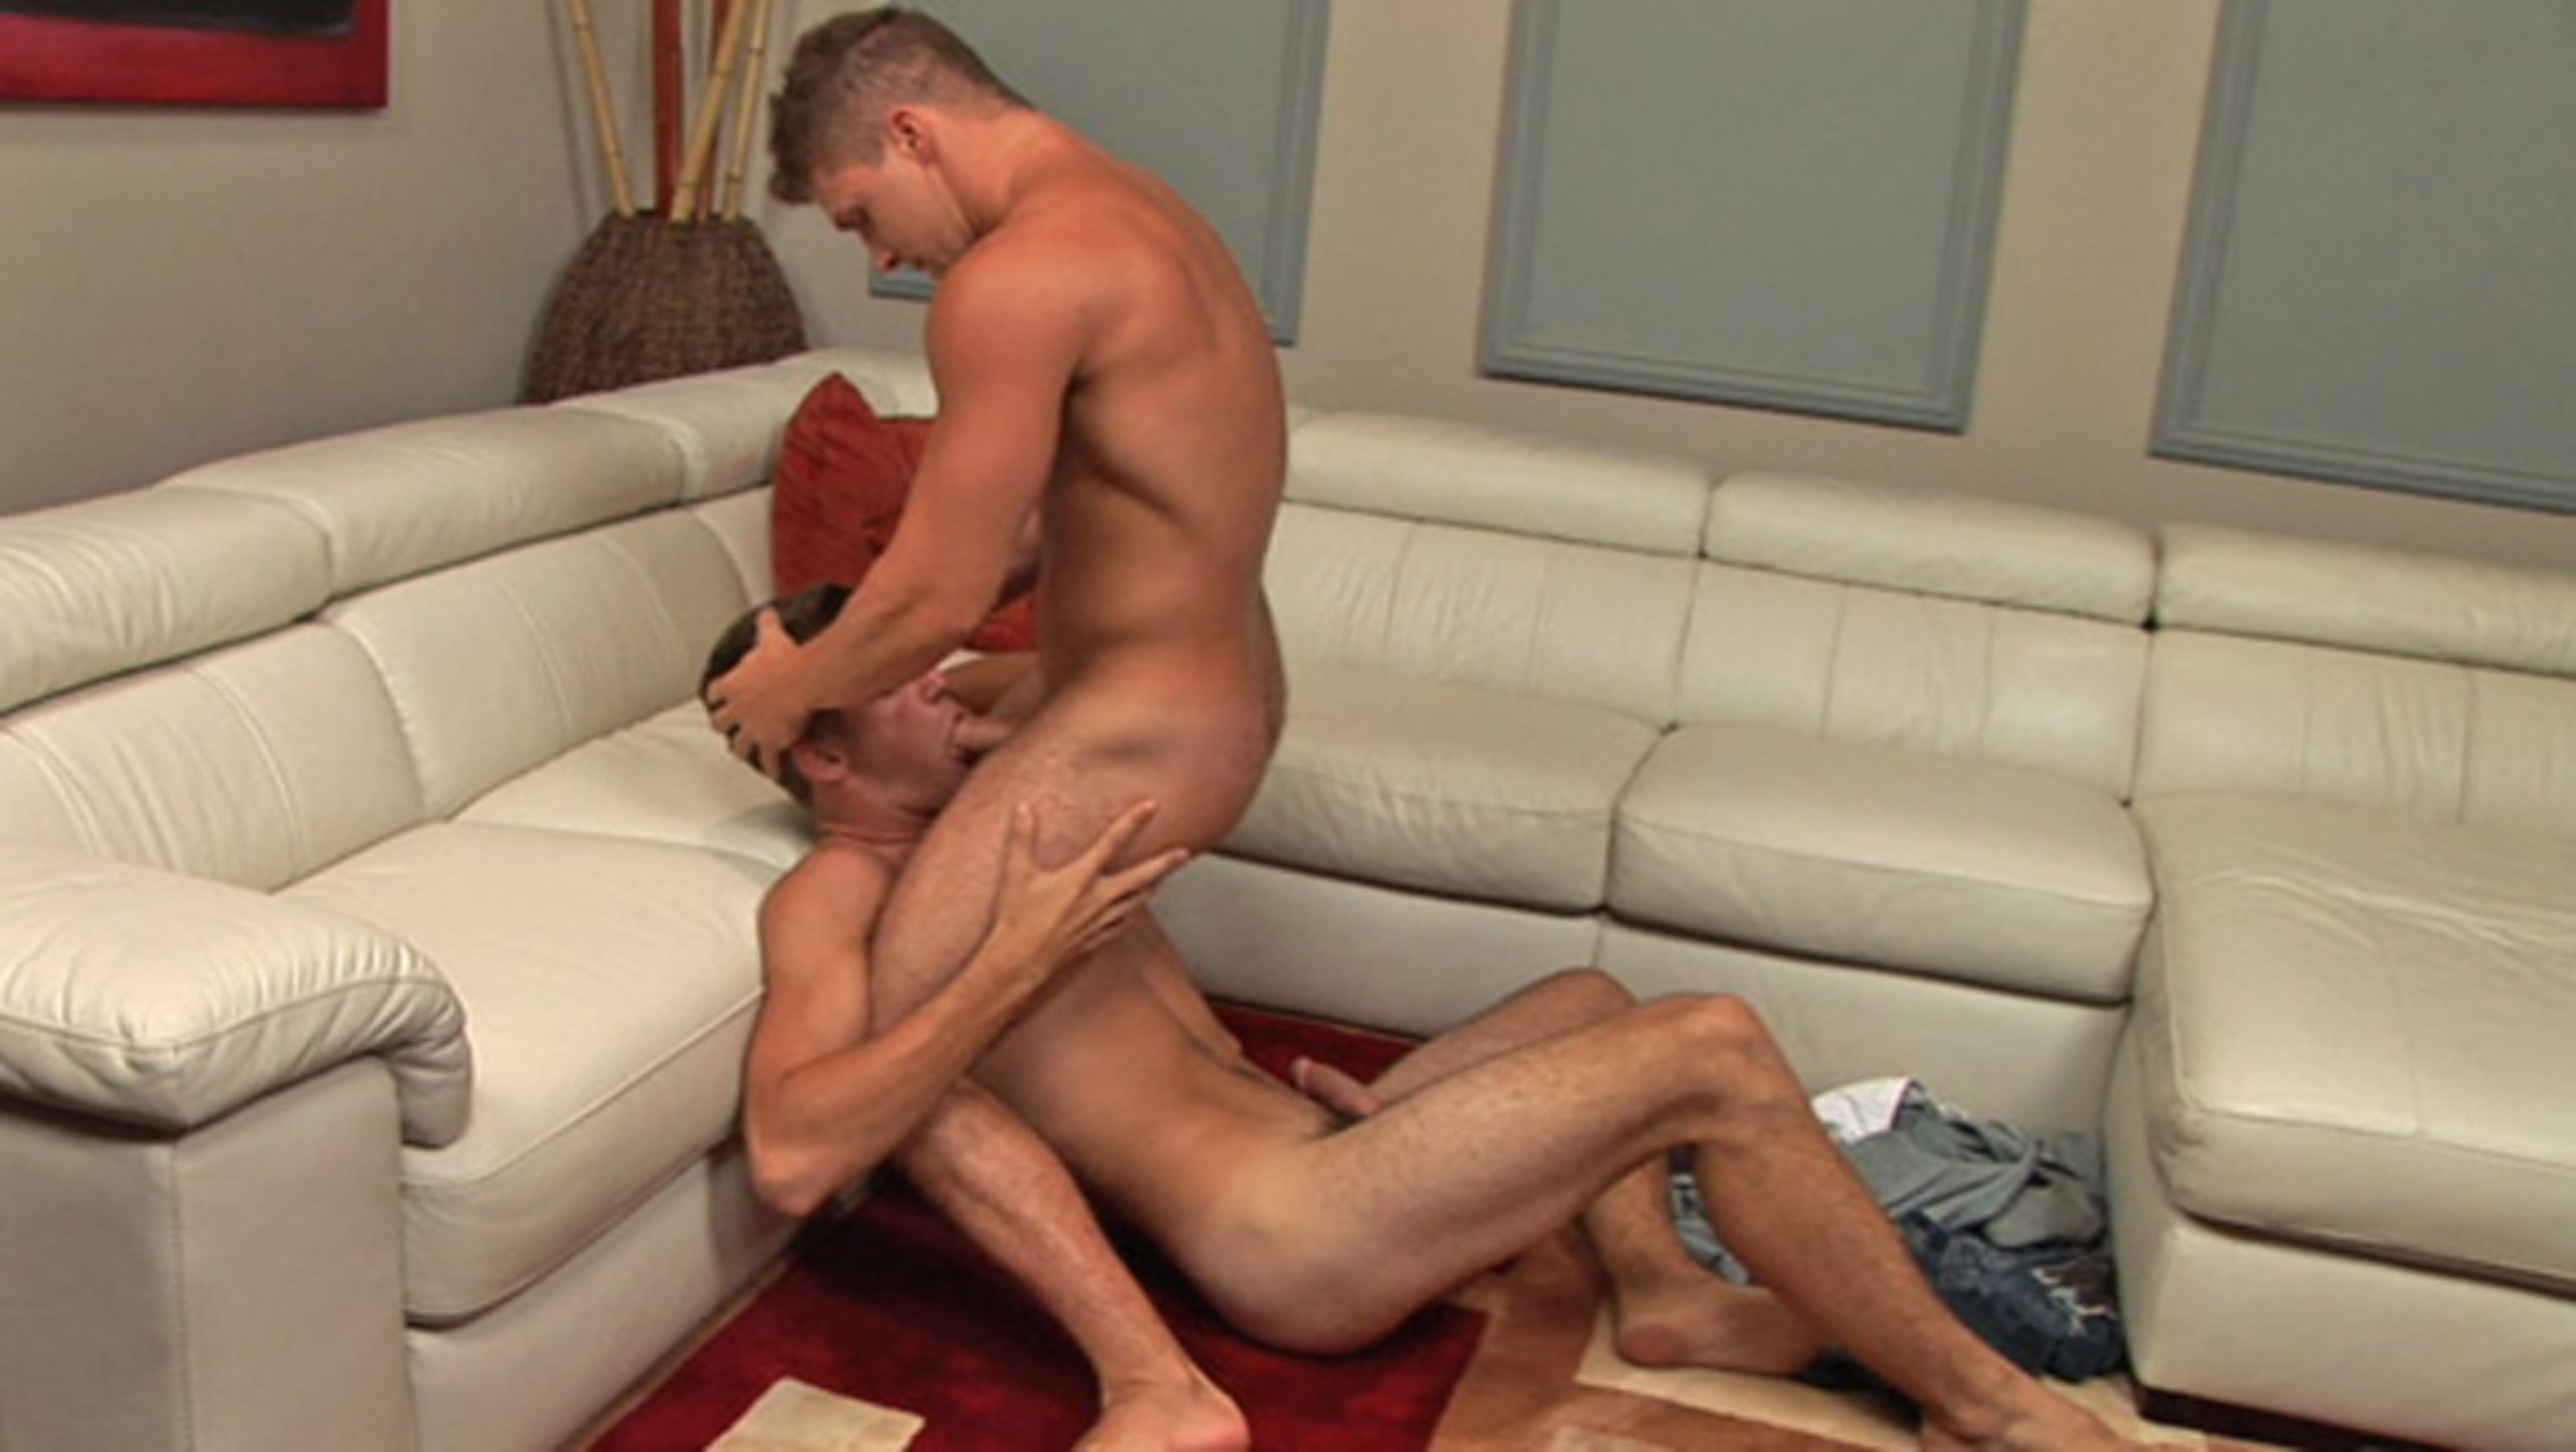 Actor Porno Gay Jess brodie & jess seancody – videoxxx.cc – video xxx